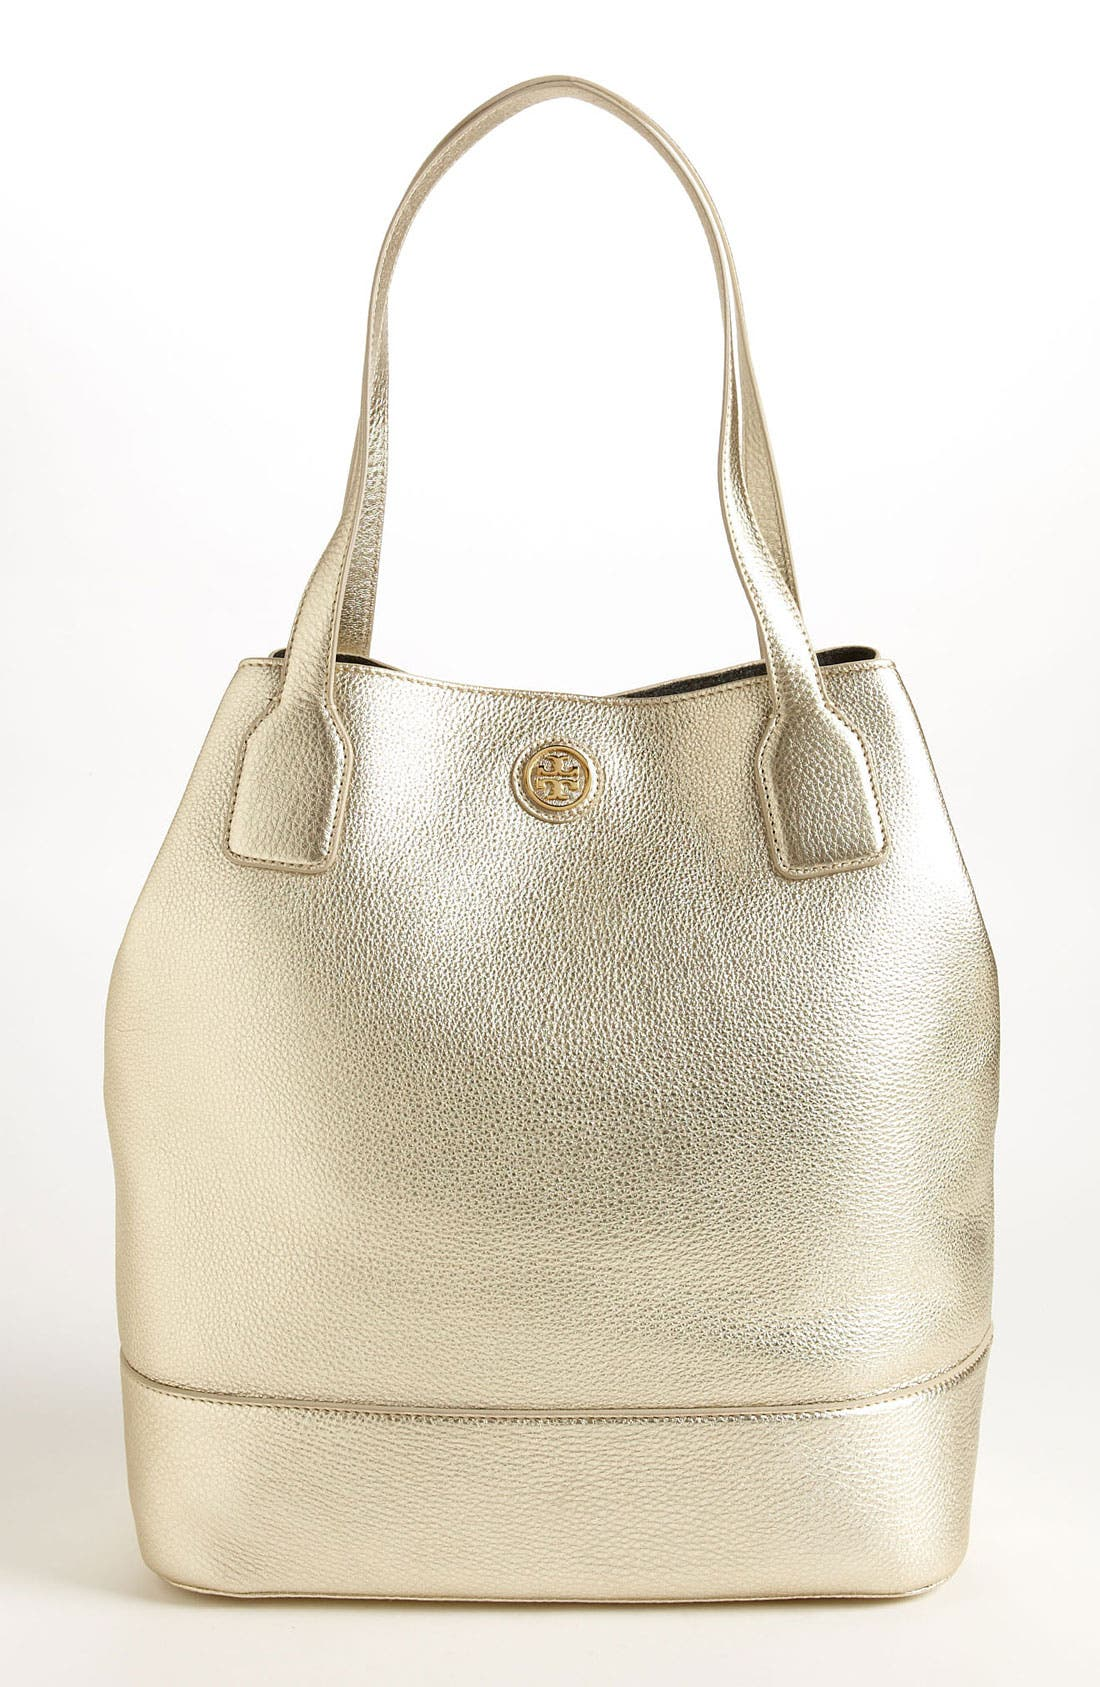 Alternate Image 1 Selected - Tory Burch 'Michelle' Tote